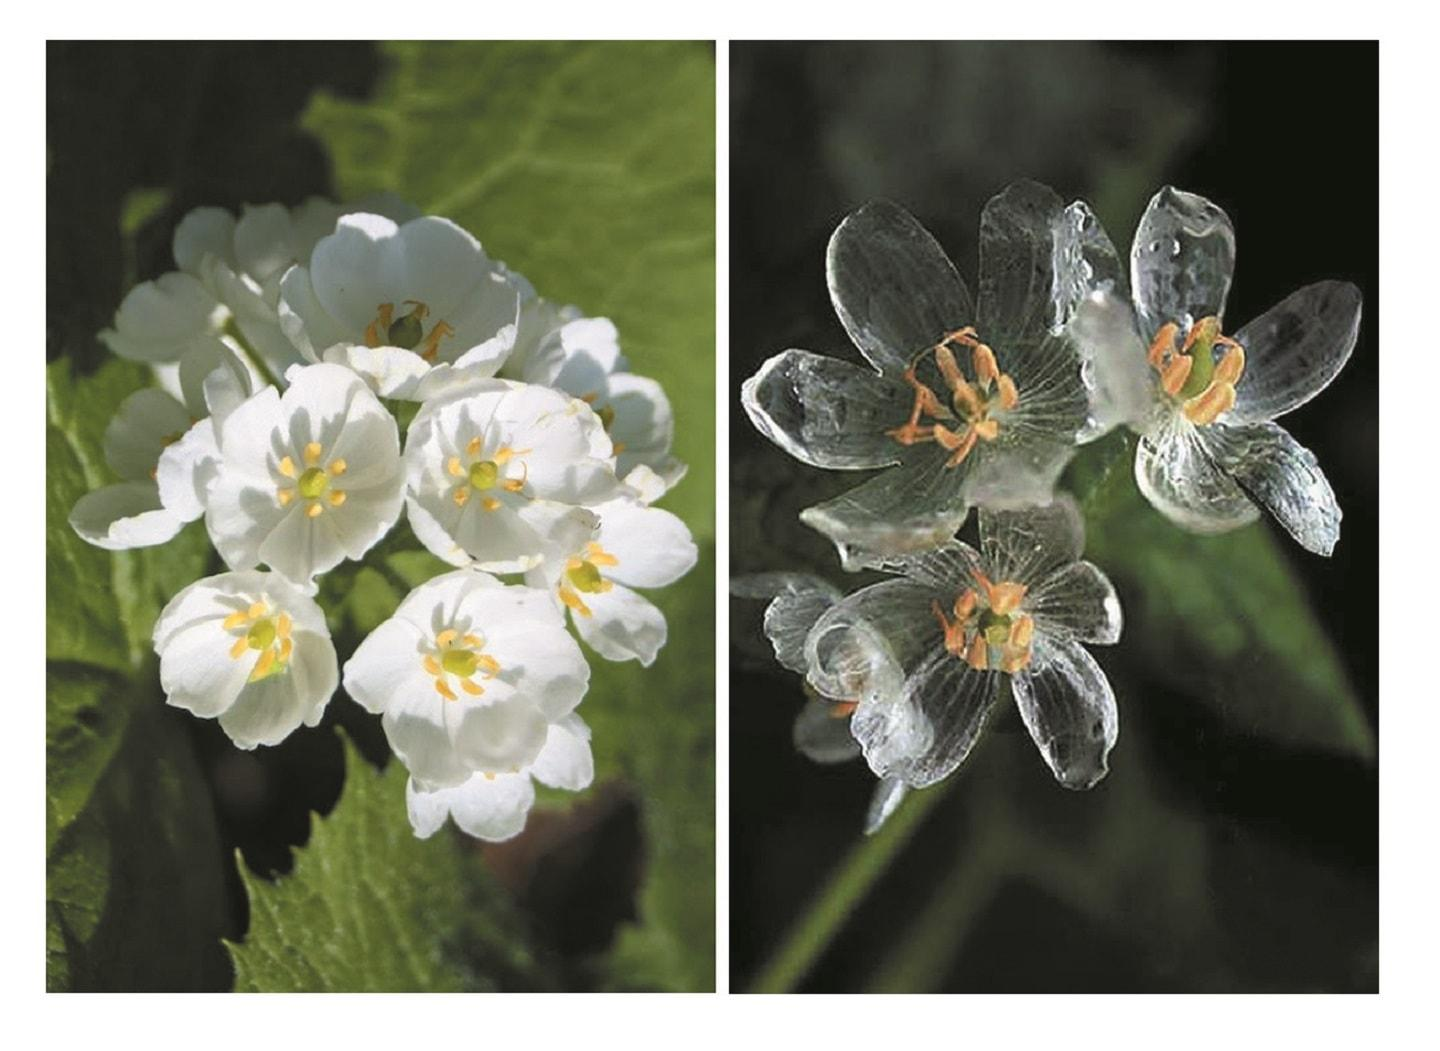 Skeleton flower turns transparent when wet amazing diphylleia grayi or skeleton flower have petals and when they get wet they turn from mightylinksfo